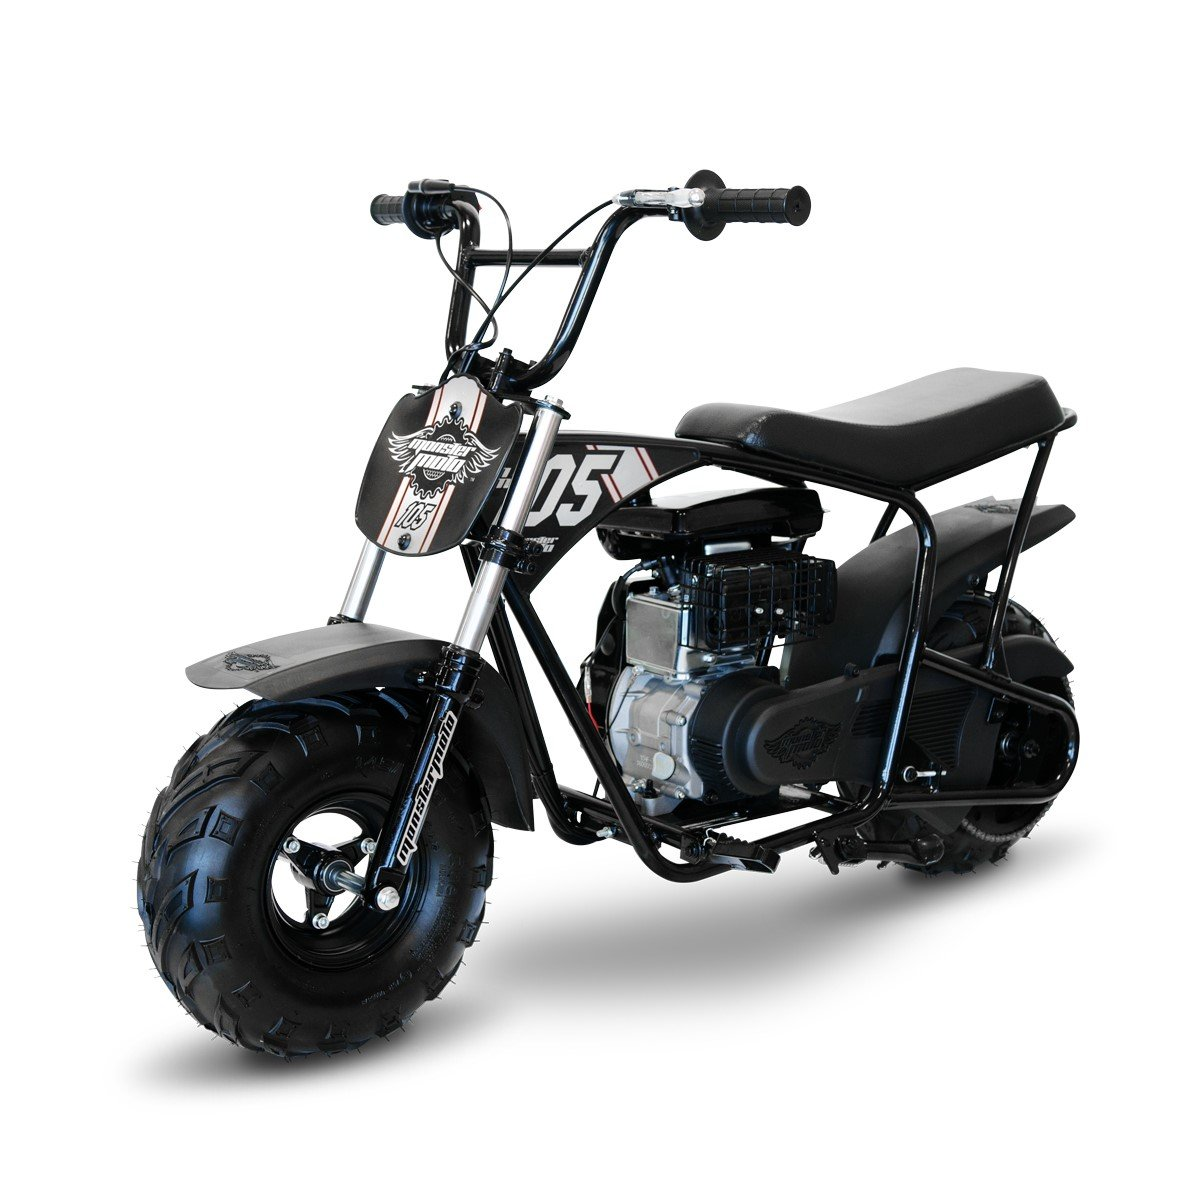 Monster Moto Limited Edition Black on Silver 105CC Mini Bike with Front Suspension-MM-B105-BBX